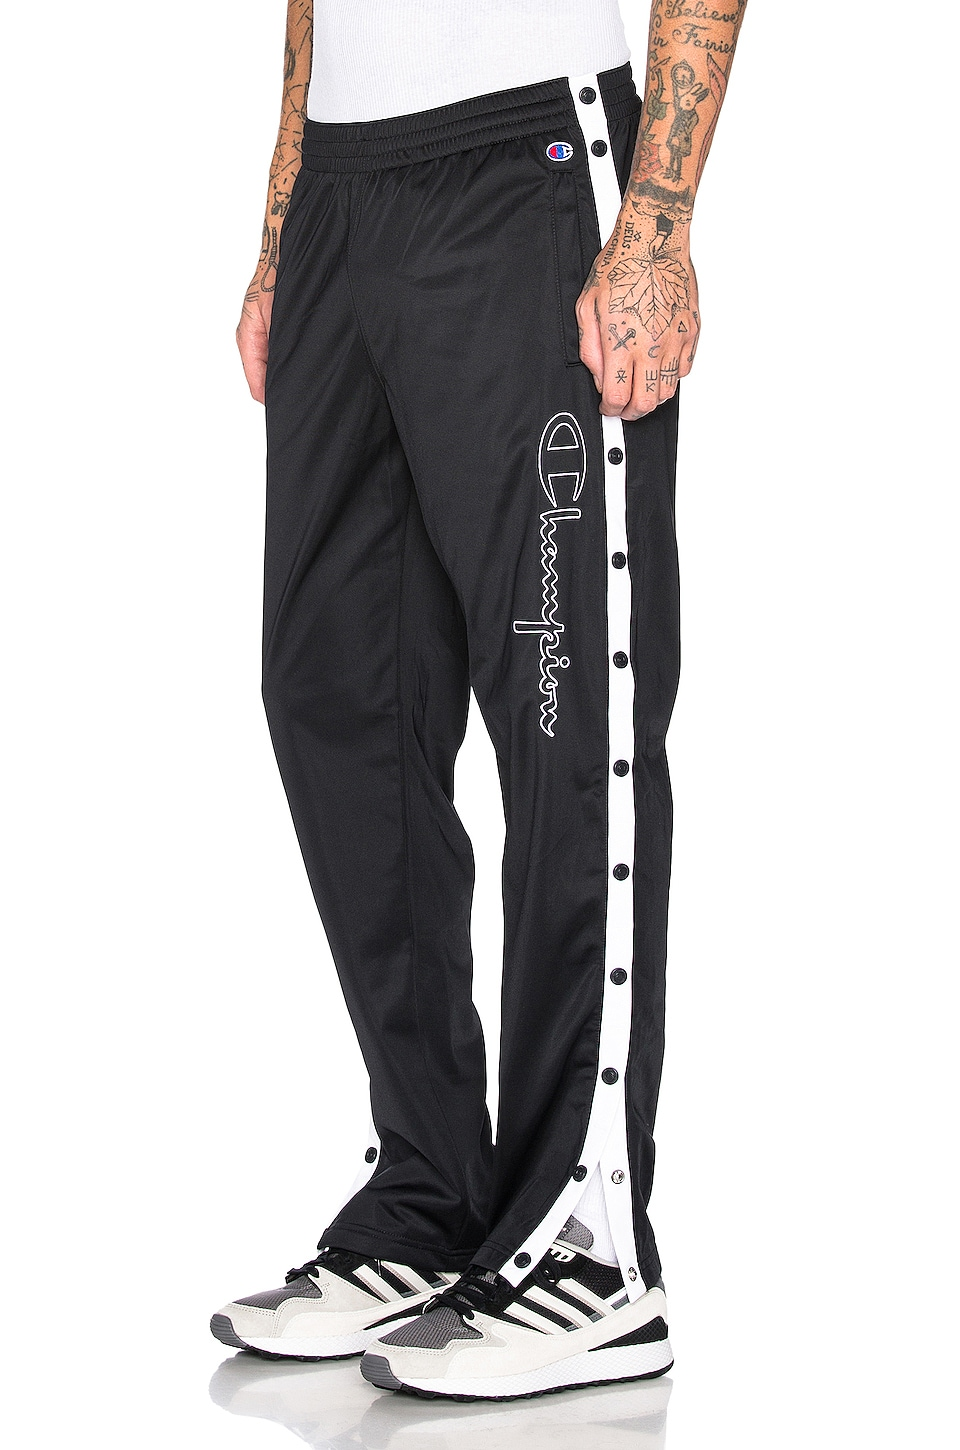 Champion Reverse Weave Champion Pants in Black & White